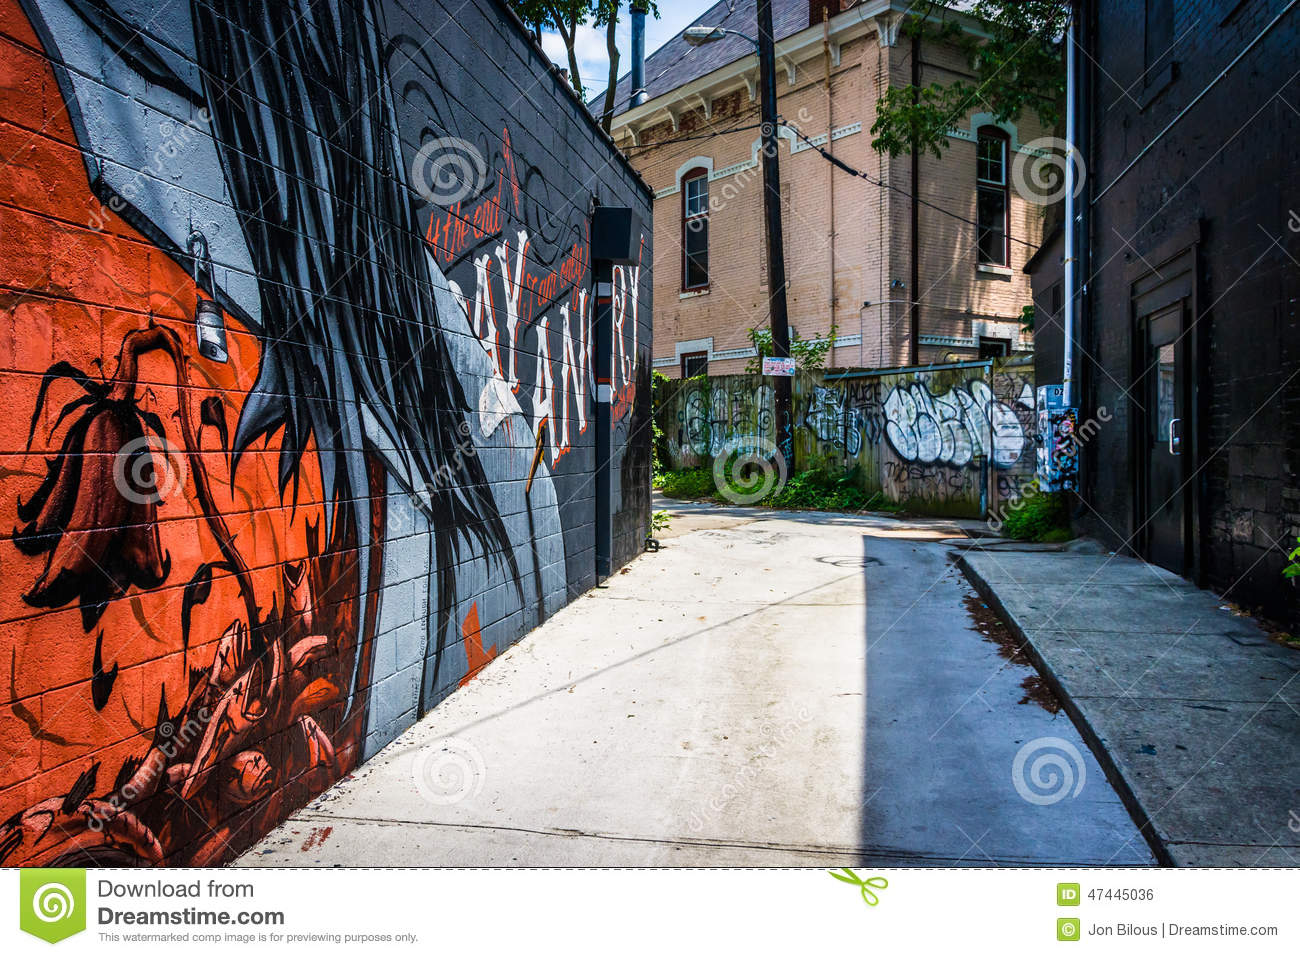 Graffiti wall atlanta - Graffiti In An Alley In Little Five Points Atlanta Georgia Royalty Free Stock